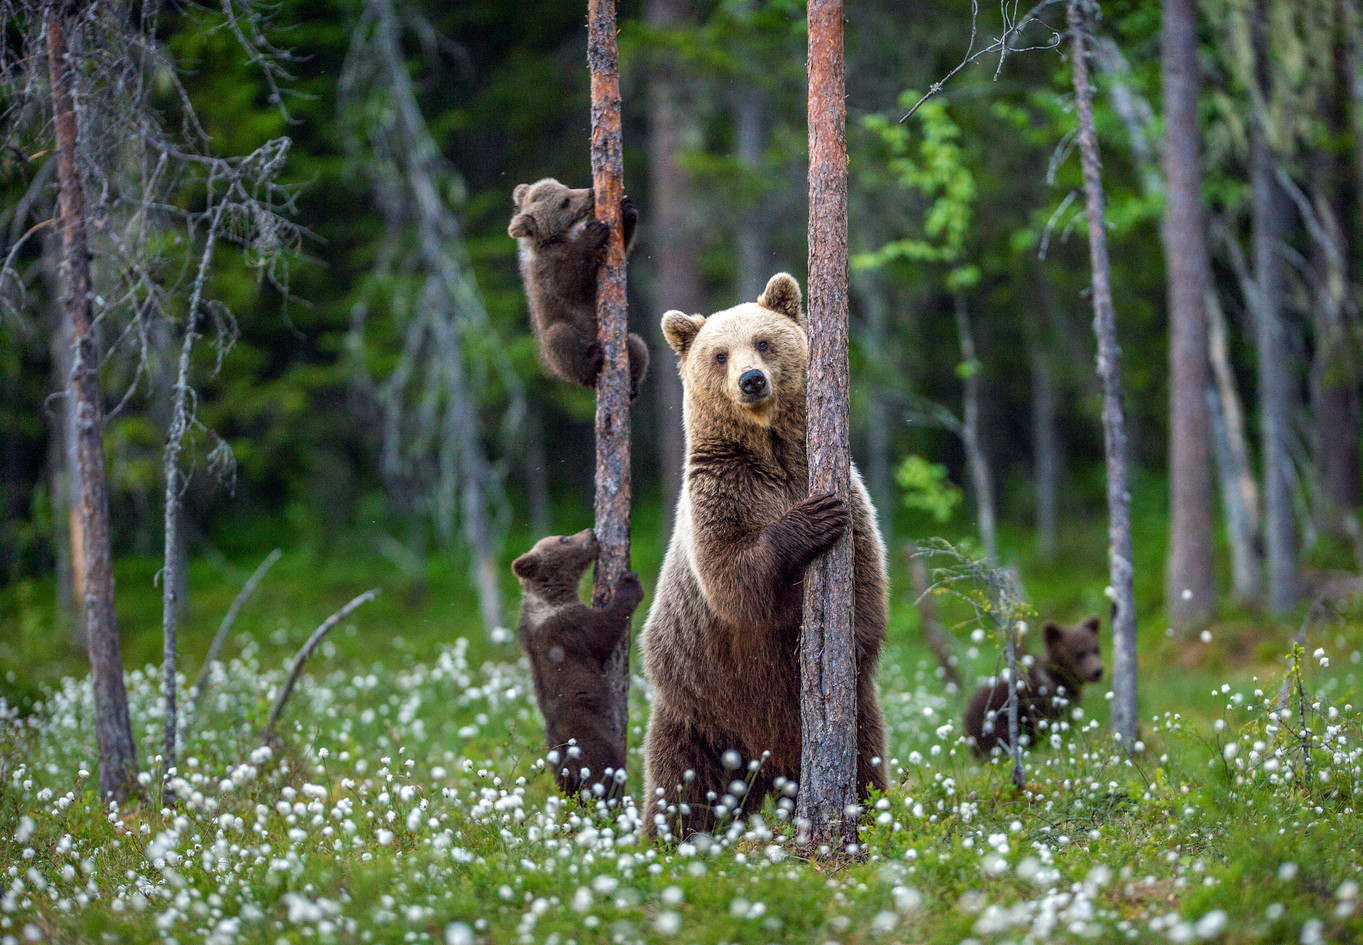 She-bear and bear cubs in the summer for